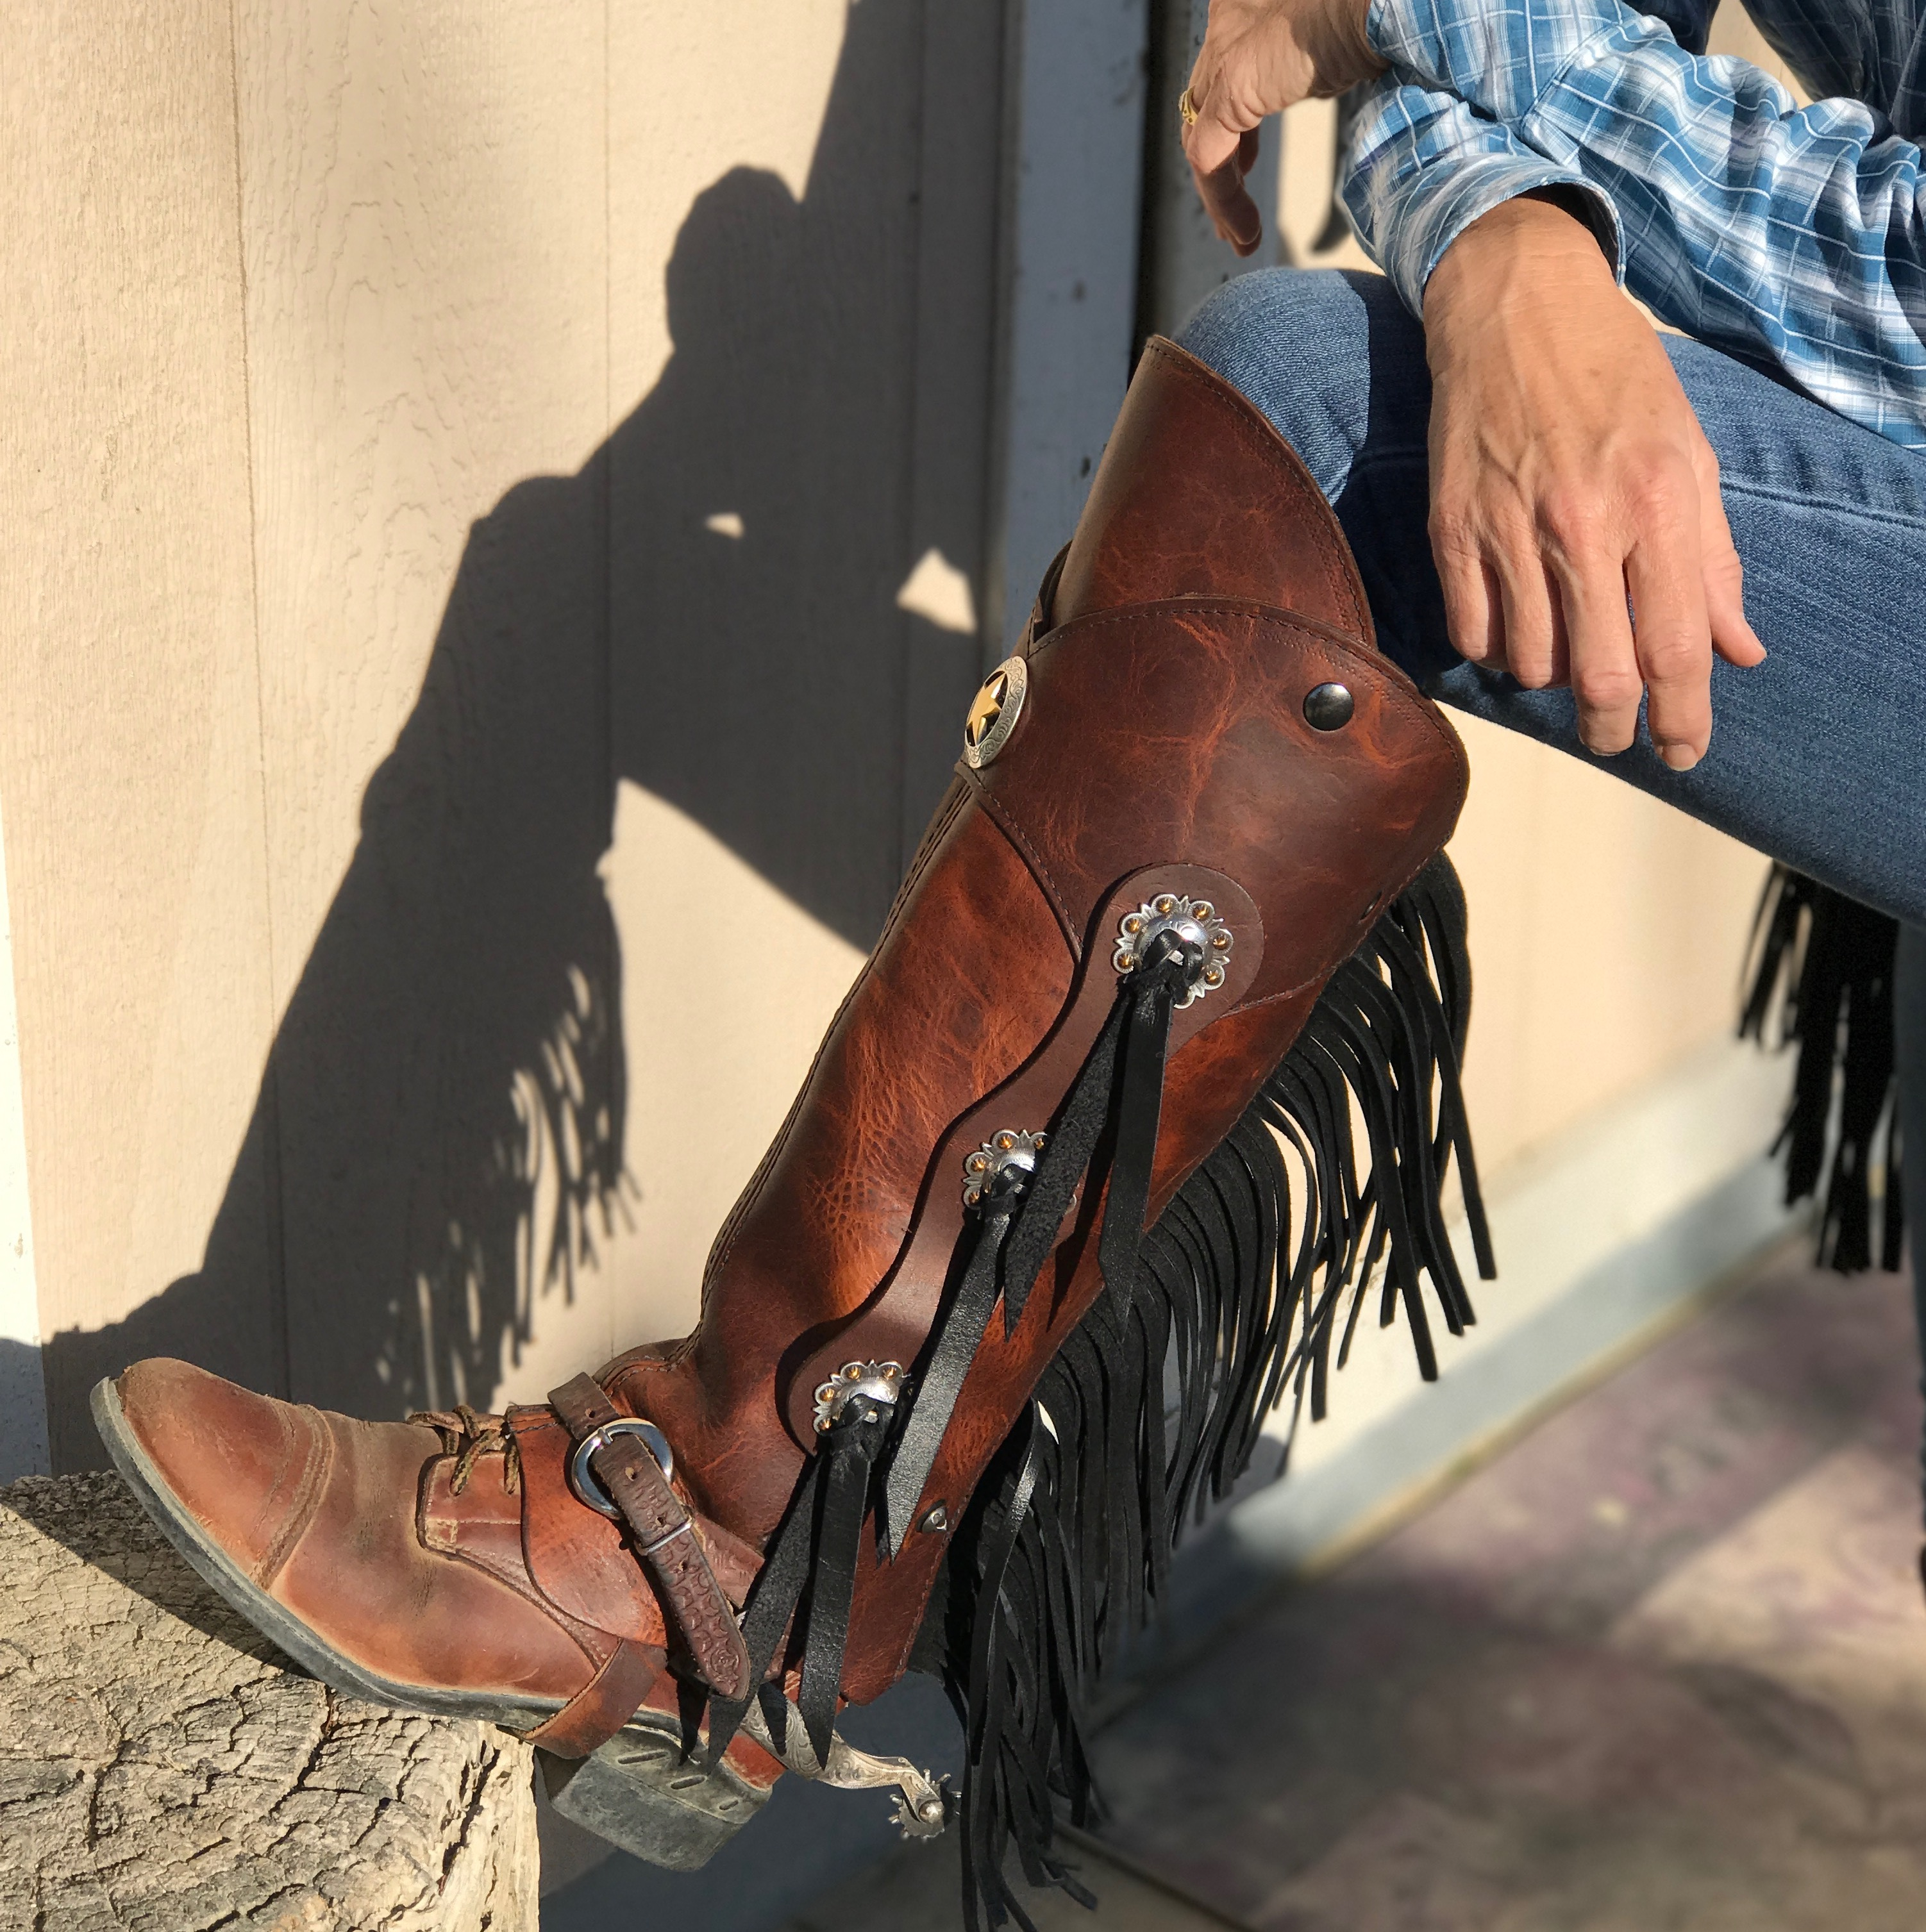 d3Riff Designer Half Chaps with the Cowboy Up kit and Zipper Fringe in Snakebite leather